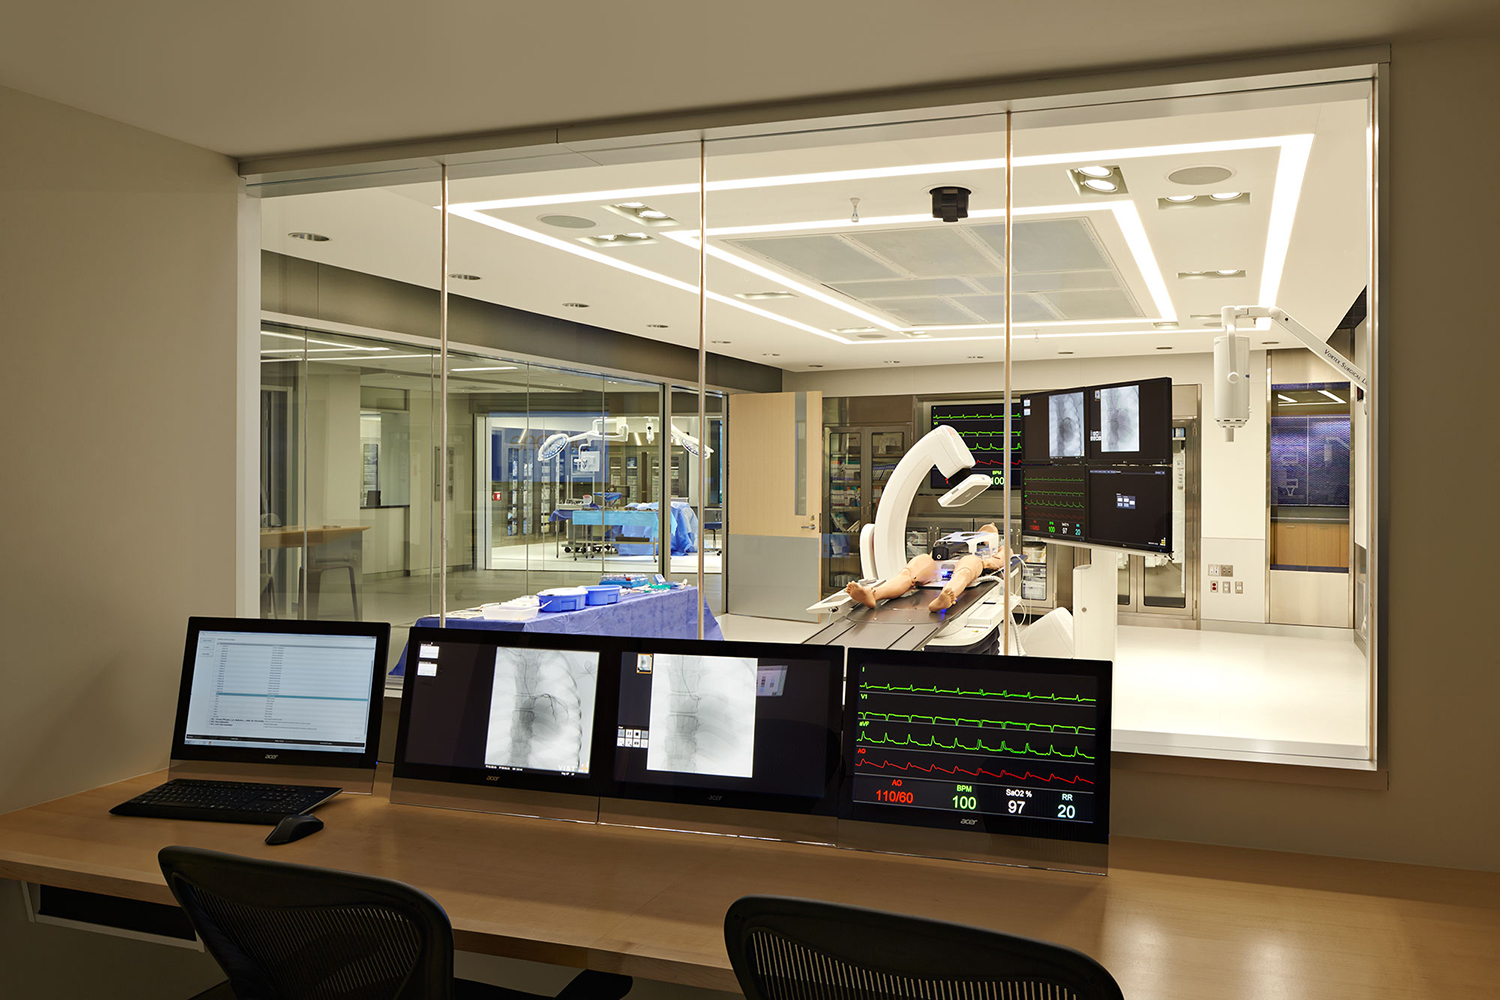 Mdco medical simulation center bsa design awards for Architecture and interior design